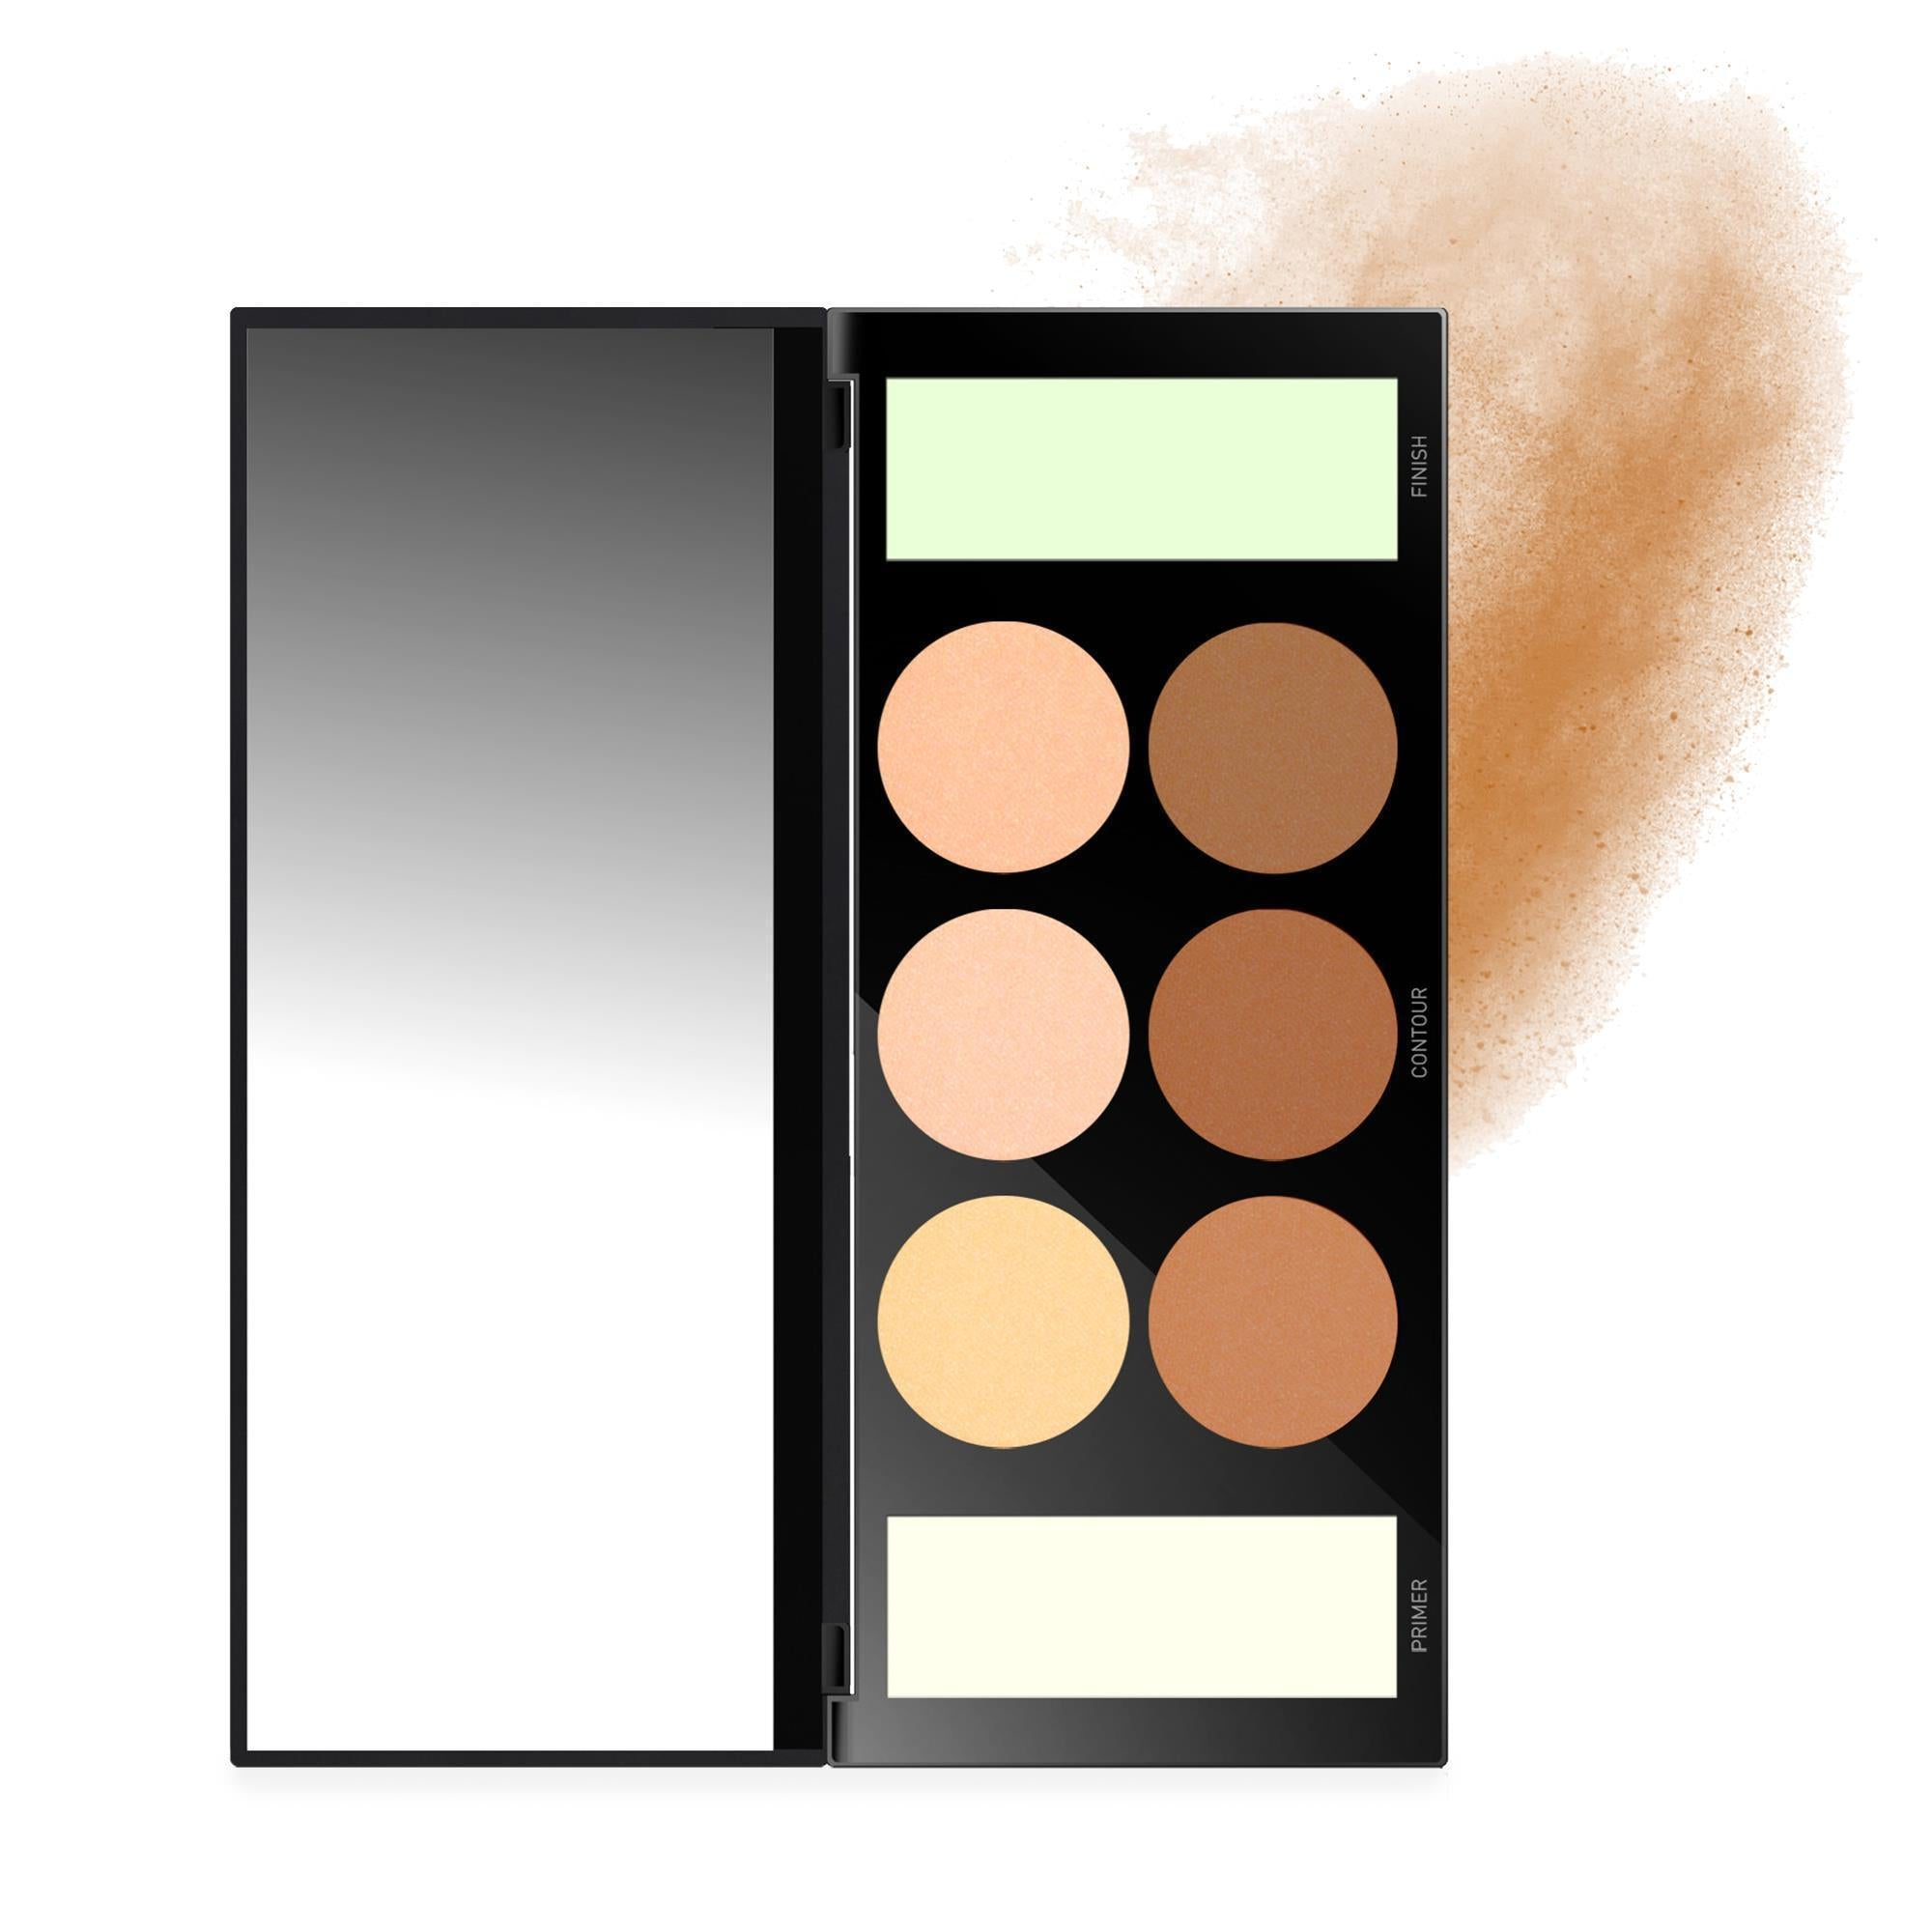 Foundations, Concealers & Prim Pressed Powder Cailyn Face Modeling Contour Palette